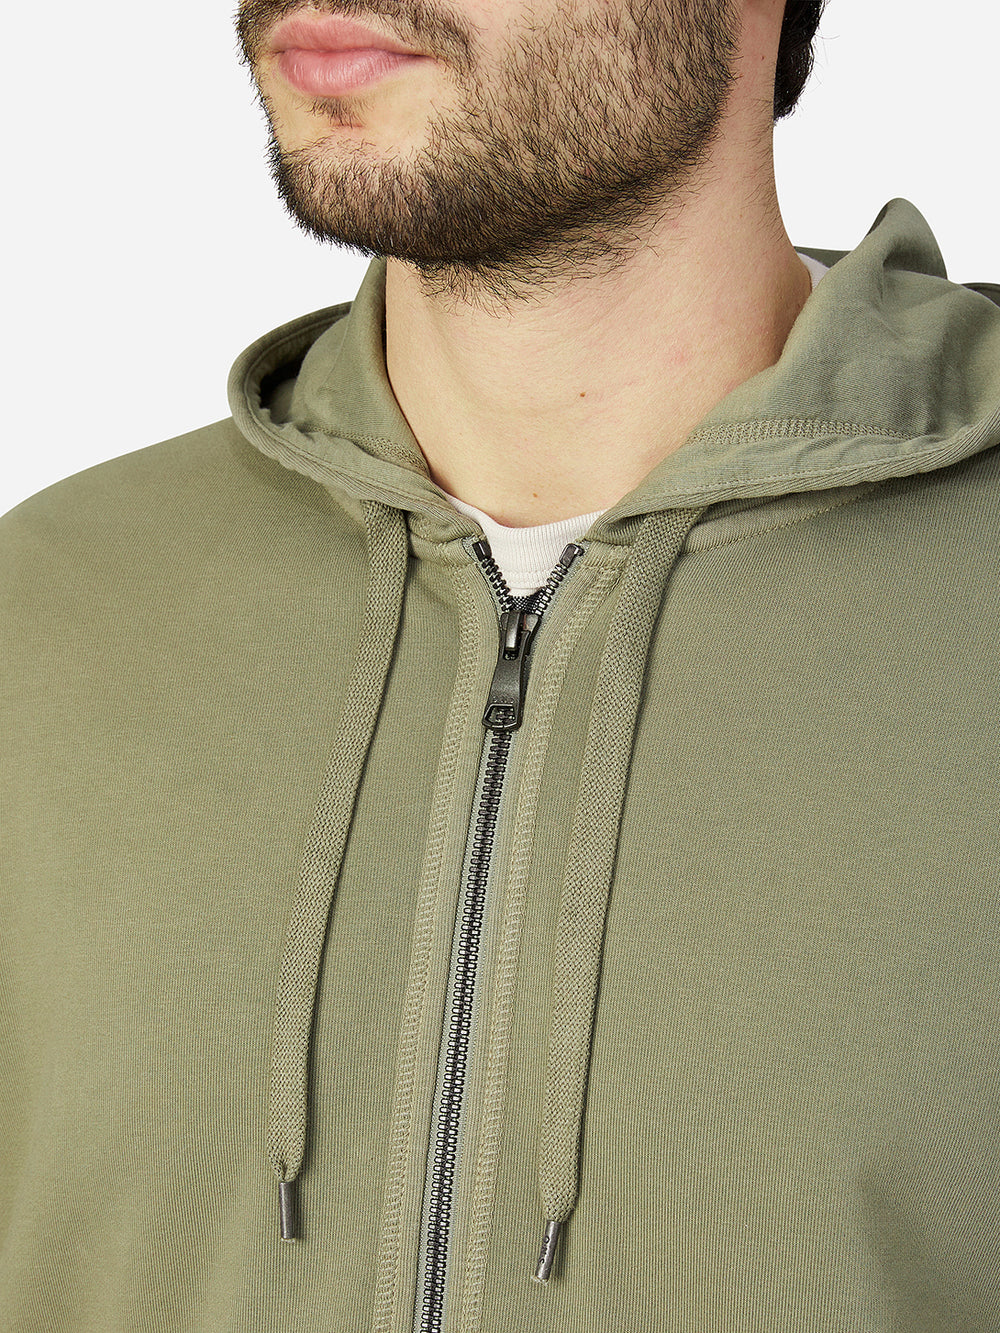 OLIVE GREEN zip sweatshirt for men zip hoodie ons clothing black friday deals